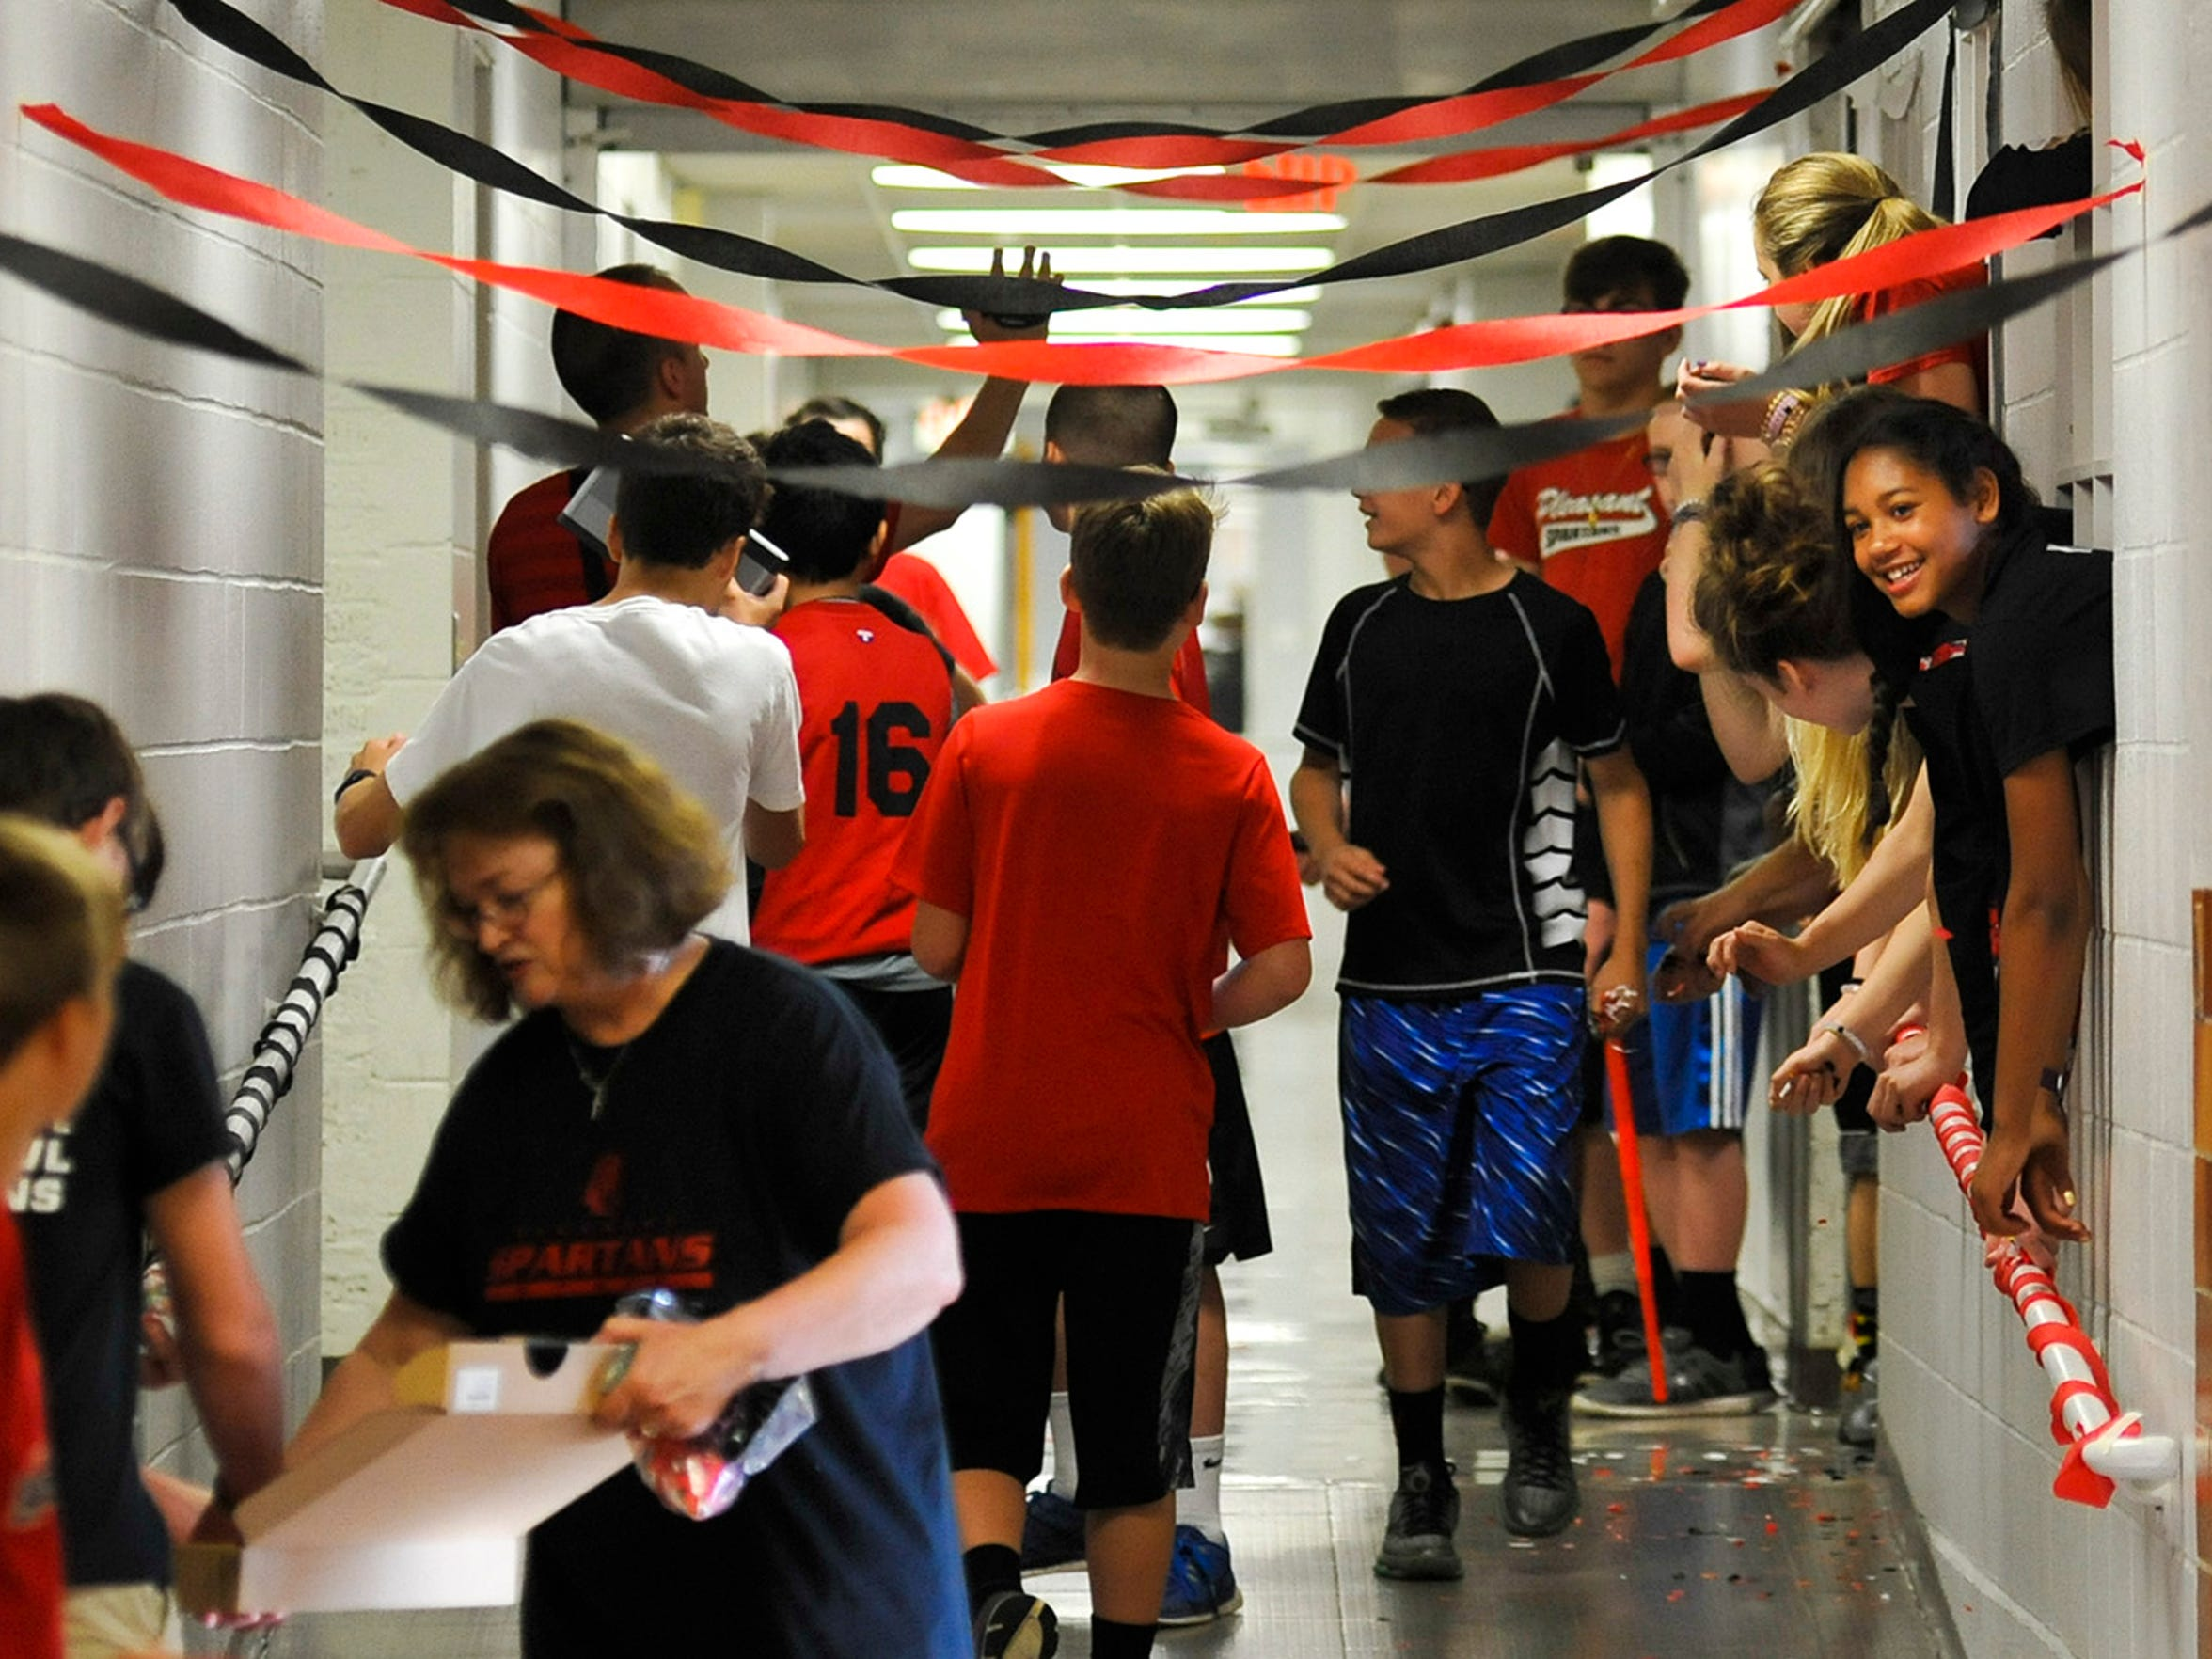 Pleasant students prepare in one of the hallways of the school for their part in a video celebrating the 100th birthday of Pleasant Middle School.